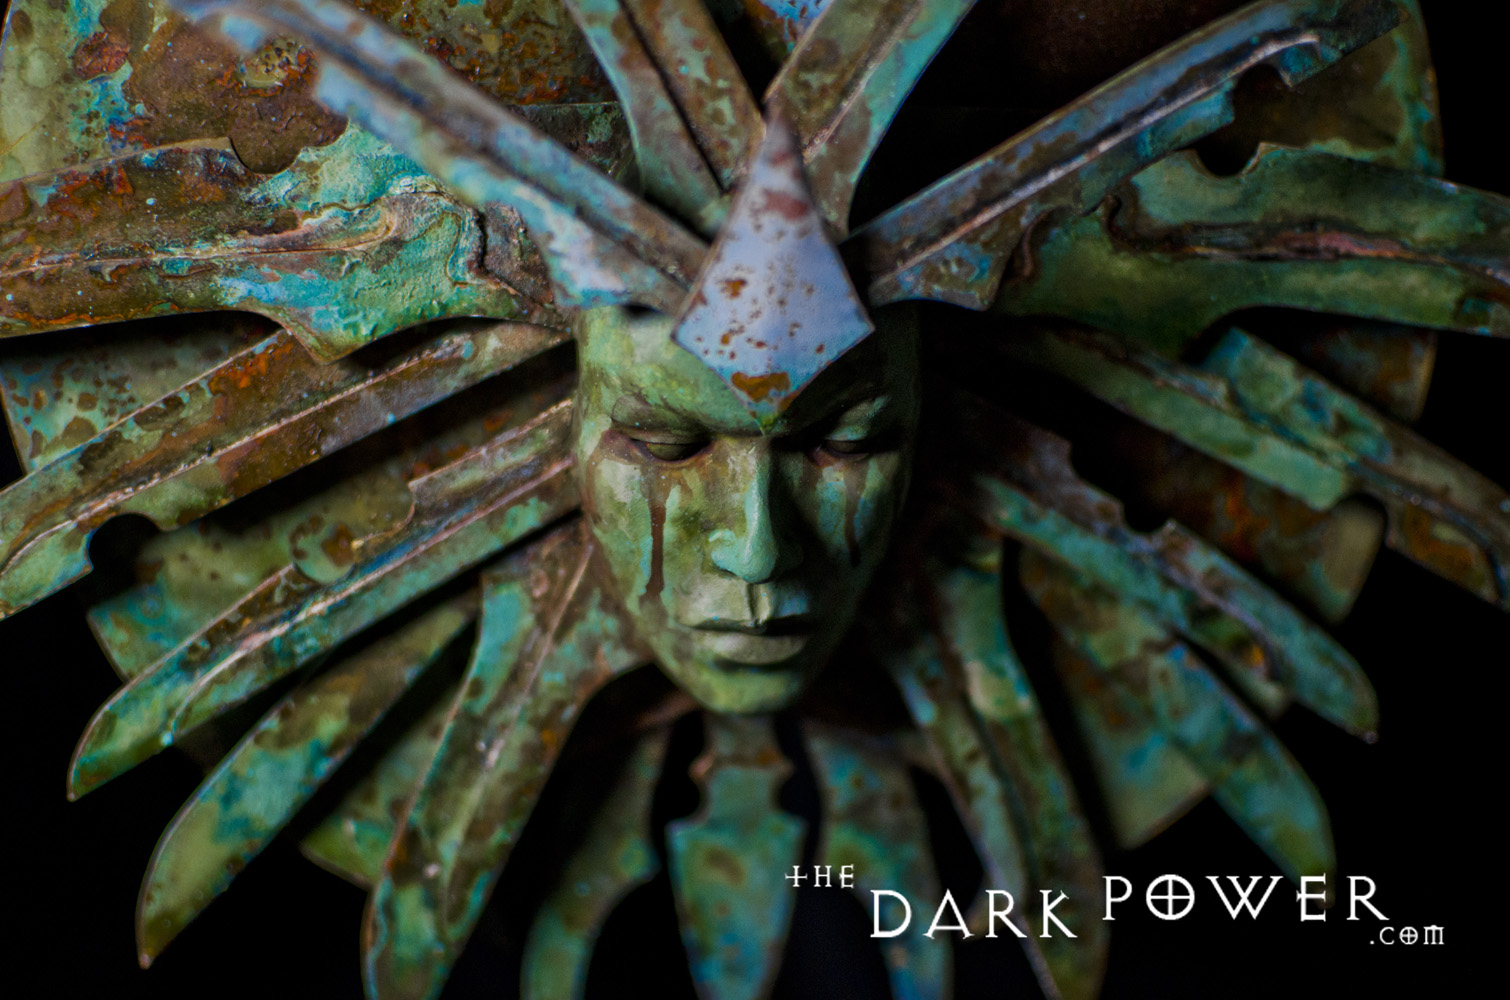 "the-dark-power ""The Lady of Pain"", dettaglio 3 - by The Dark Power (Joe) thedarkpower.com (2018-11) © dell'autore, tutti i diritti riservati"